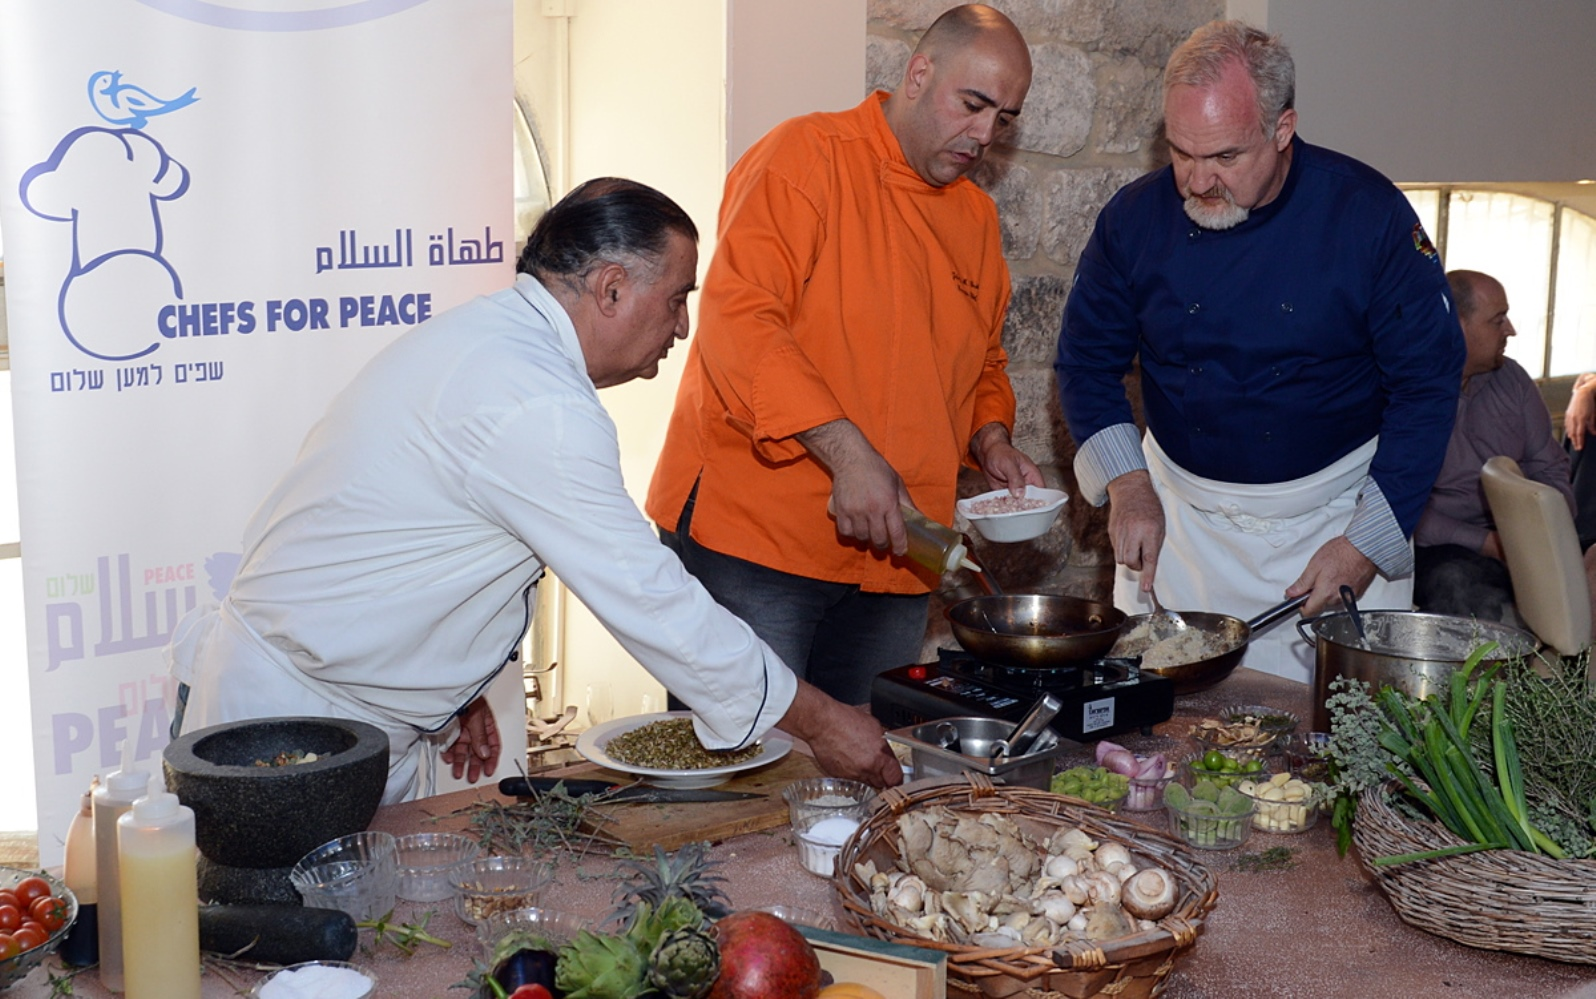 Johnny Goric, center, cooking at a Chefs for Peace event at Eucalyptus restaurant in Jerusalem. Photo courtesy of US Embassy